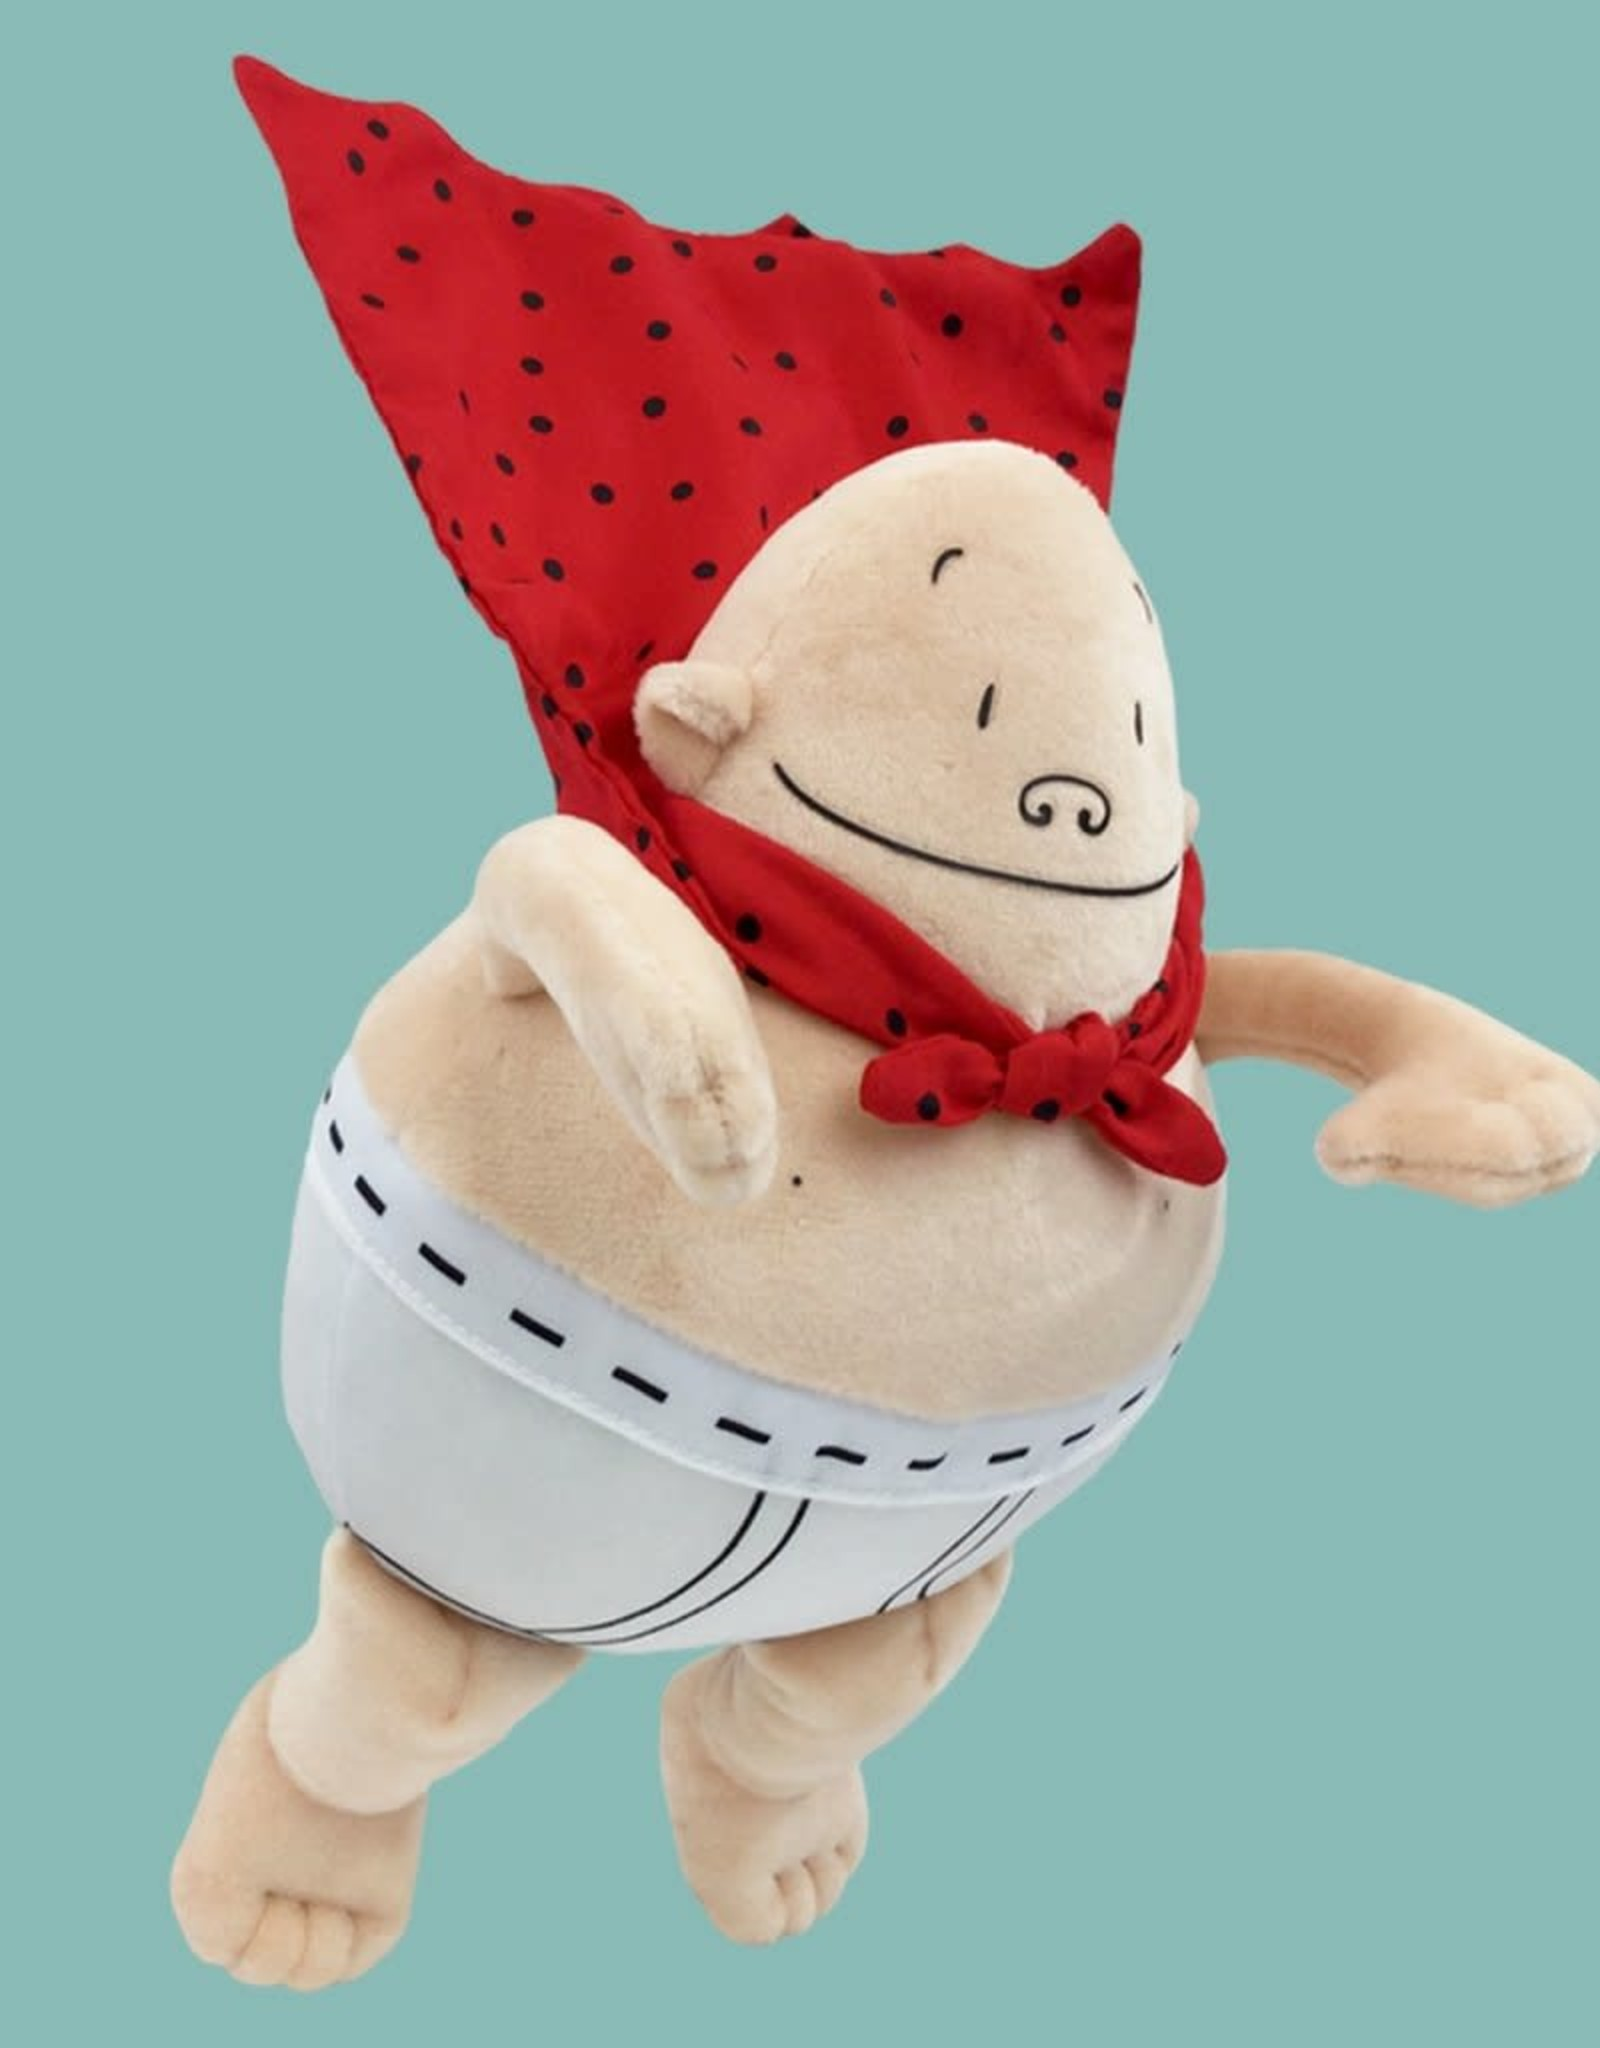 Merrymakers Captain Underpants Doll - 10""